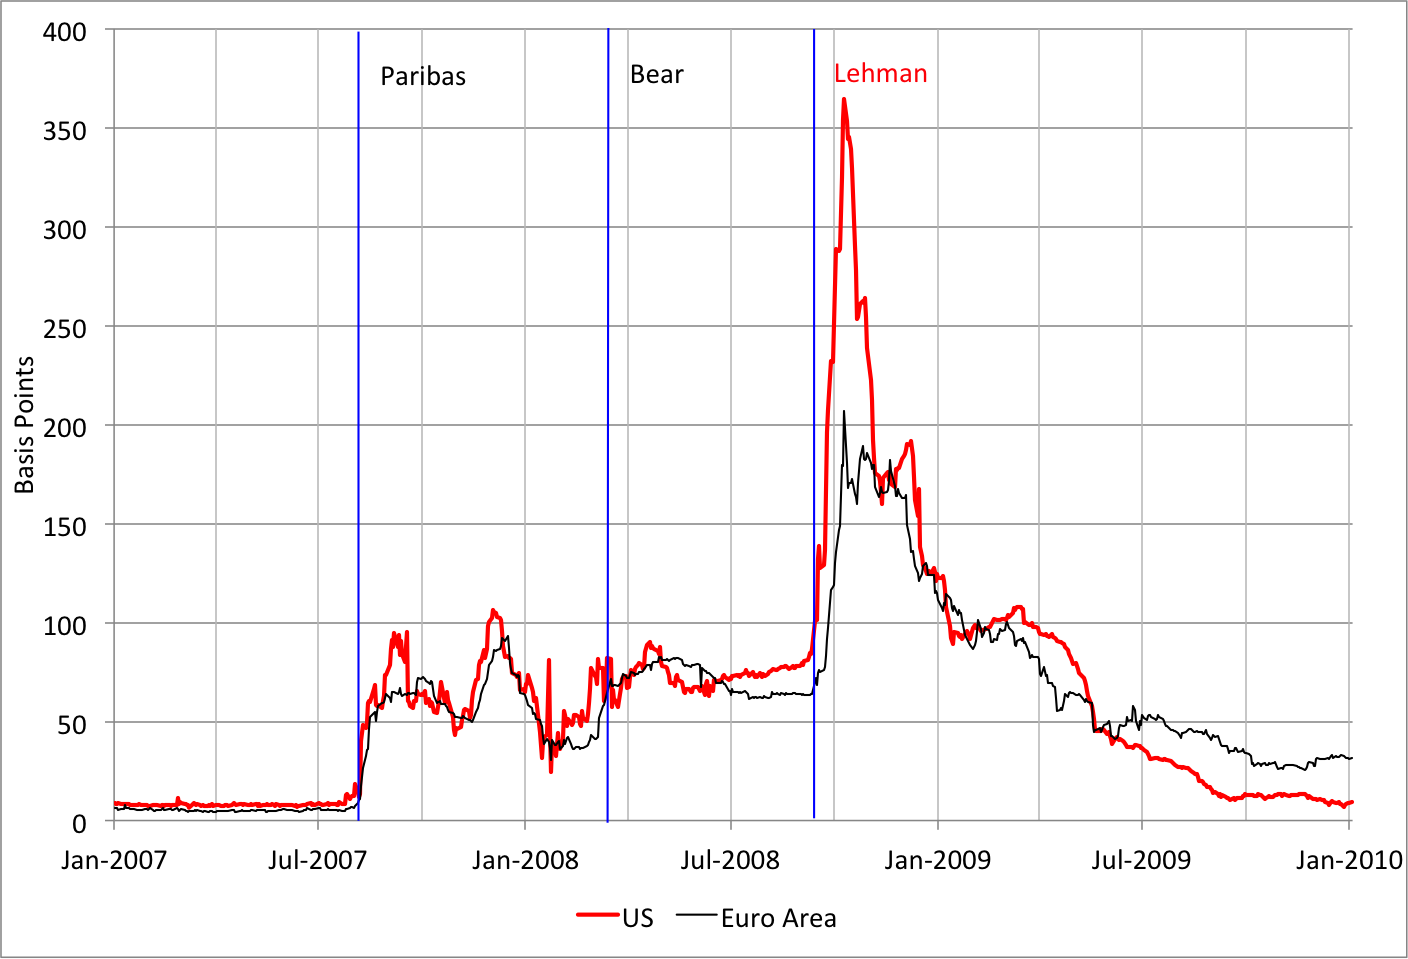 Note: The three vertical lines denote the BNP Paribas (August 9, 2007), Bear Stearns (March 14, 2008) and Lehman (September 15, 2008) events, respectively. Source: Bloomberg.